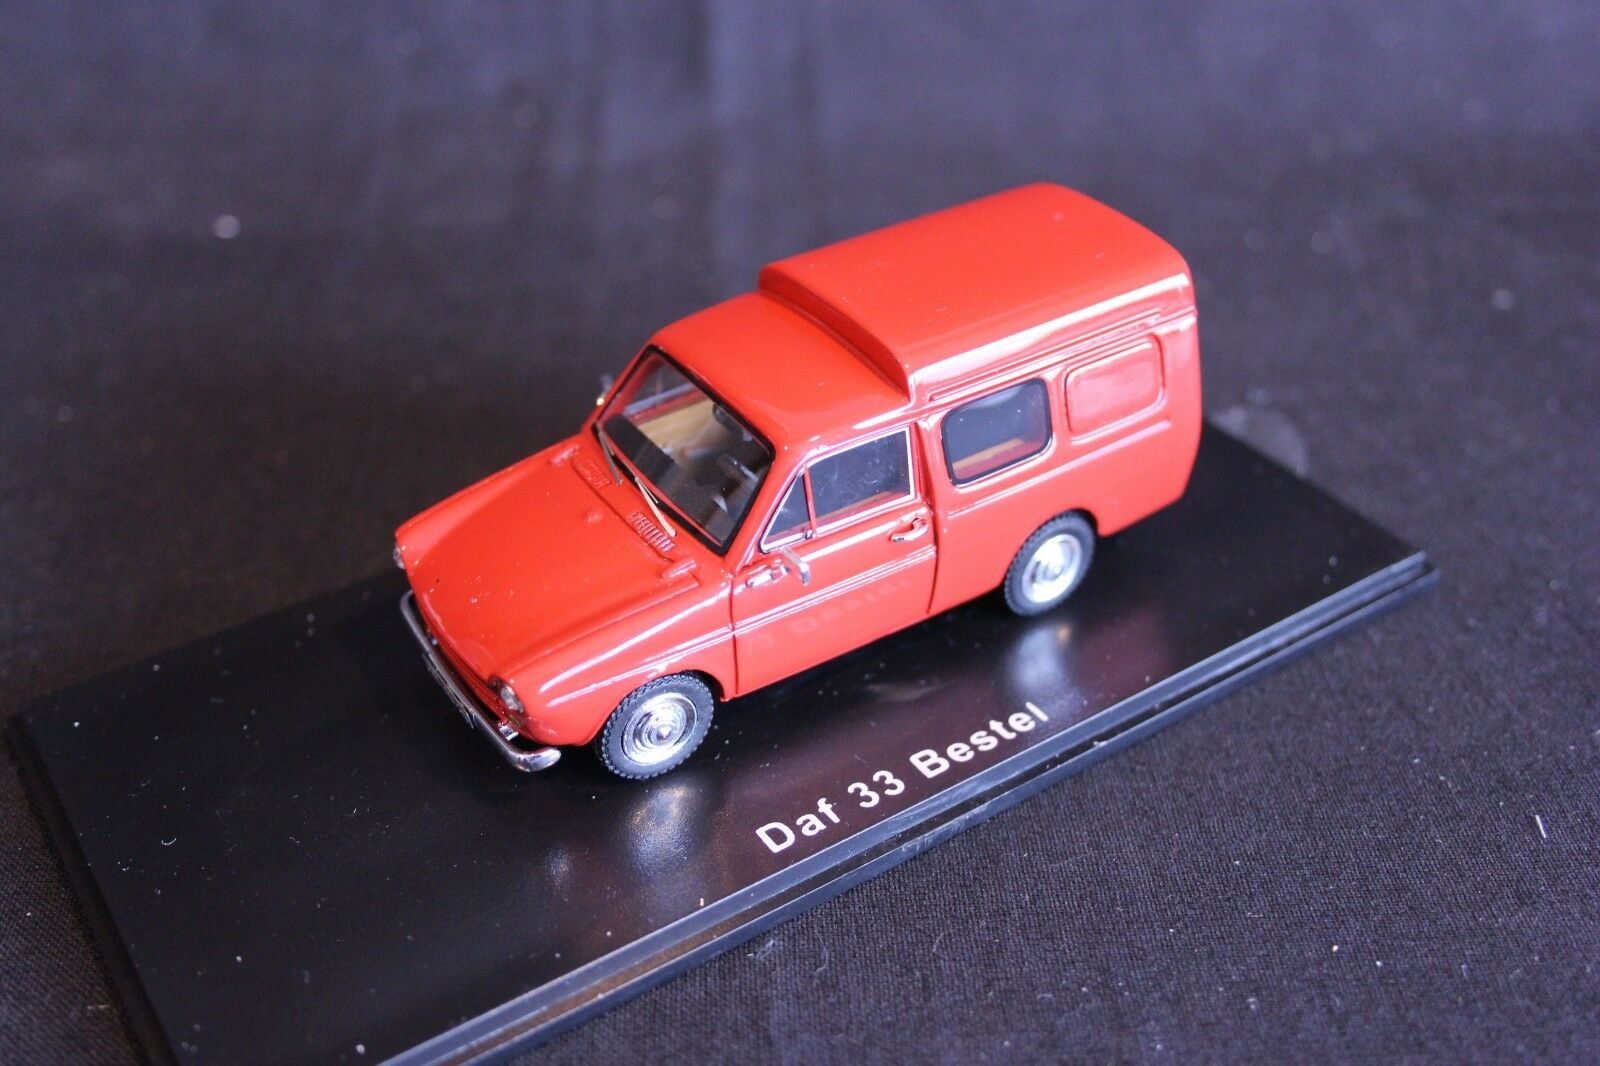 QSP Model Collection DAF 33 Bestel 1 43 rood